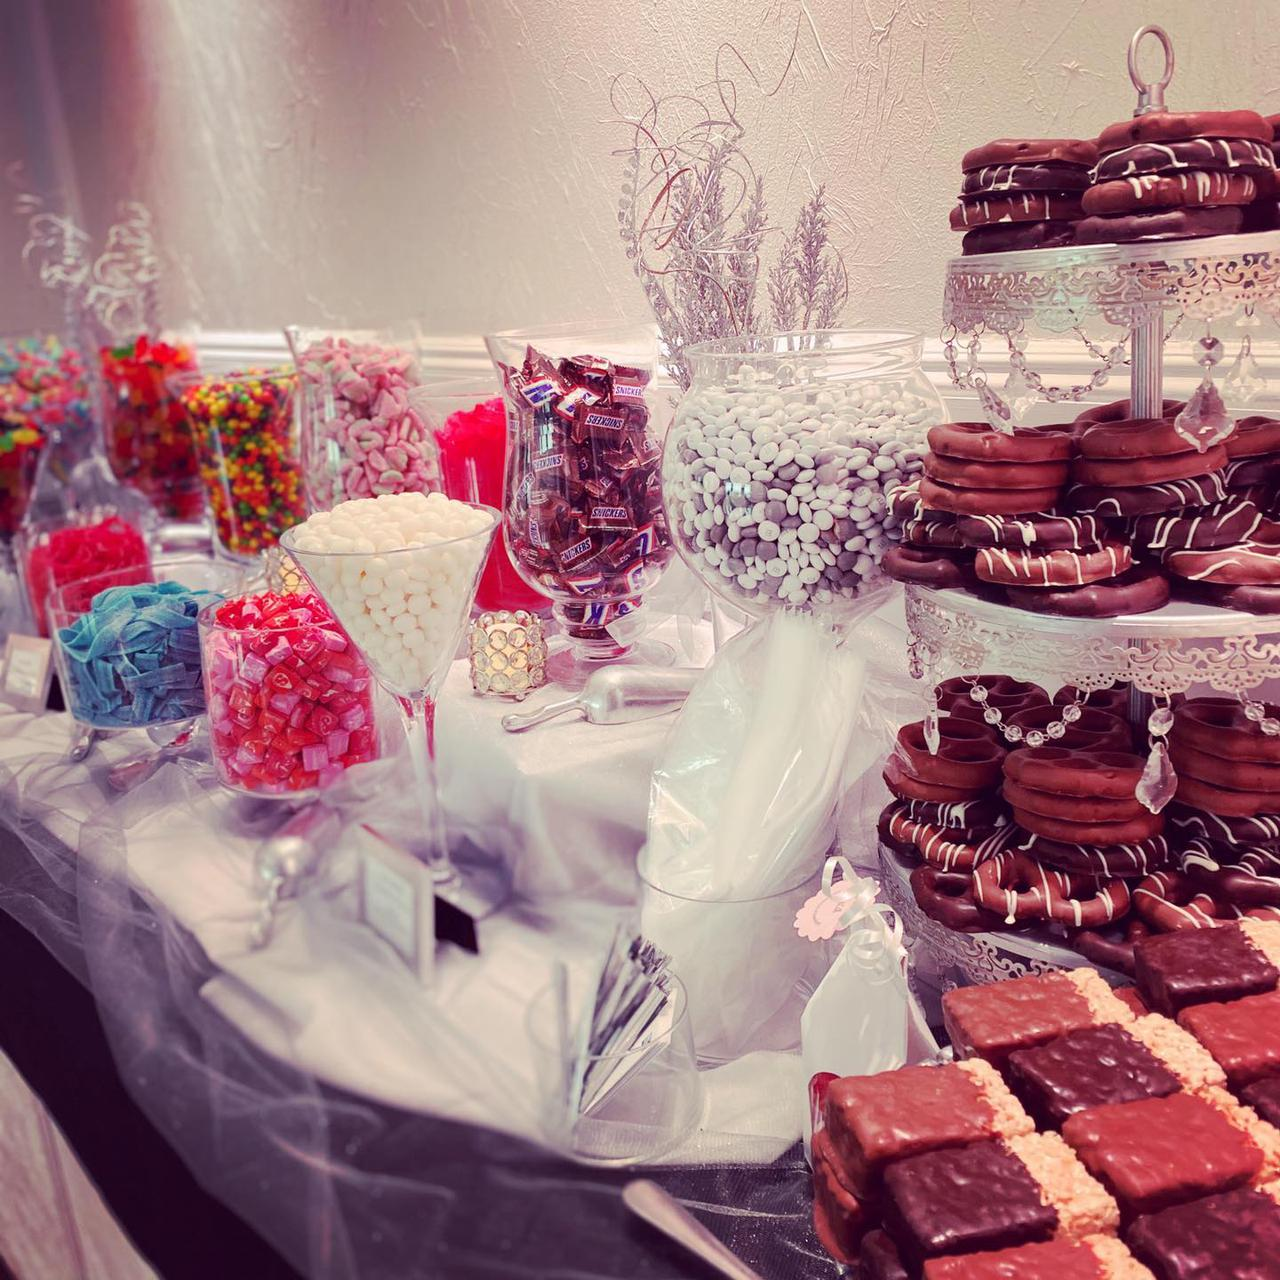 candy table for an event